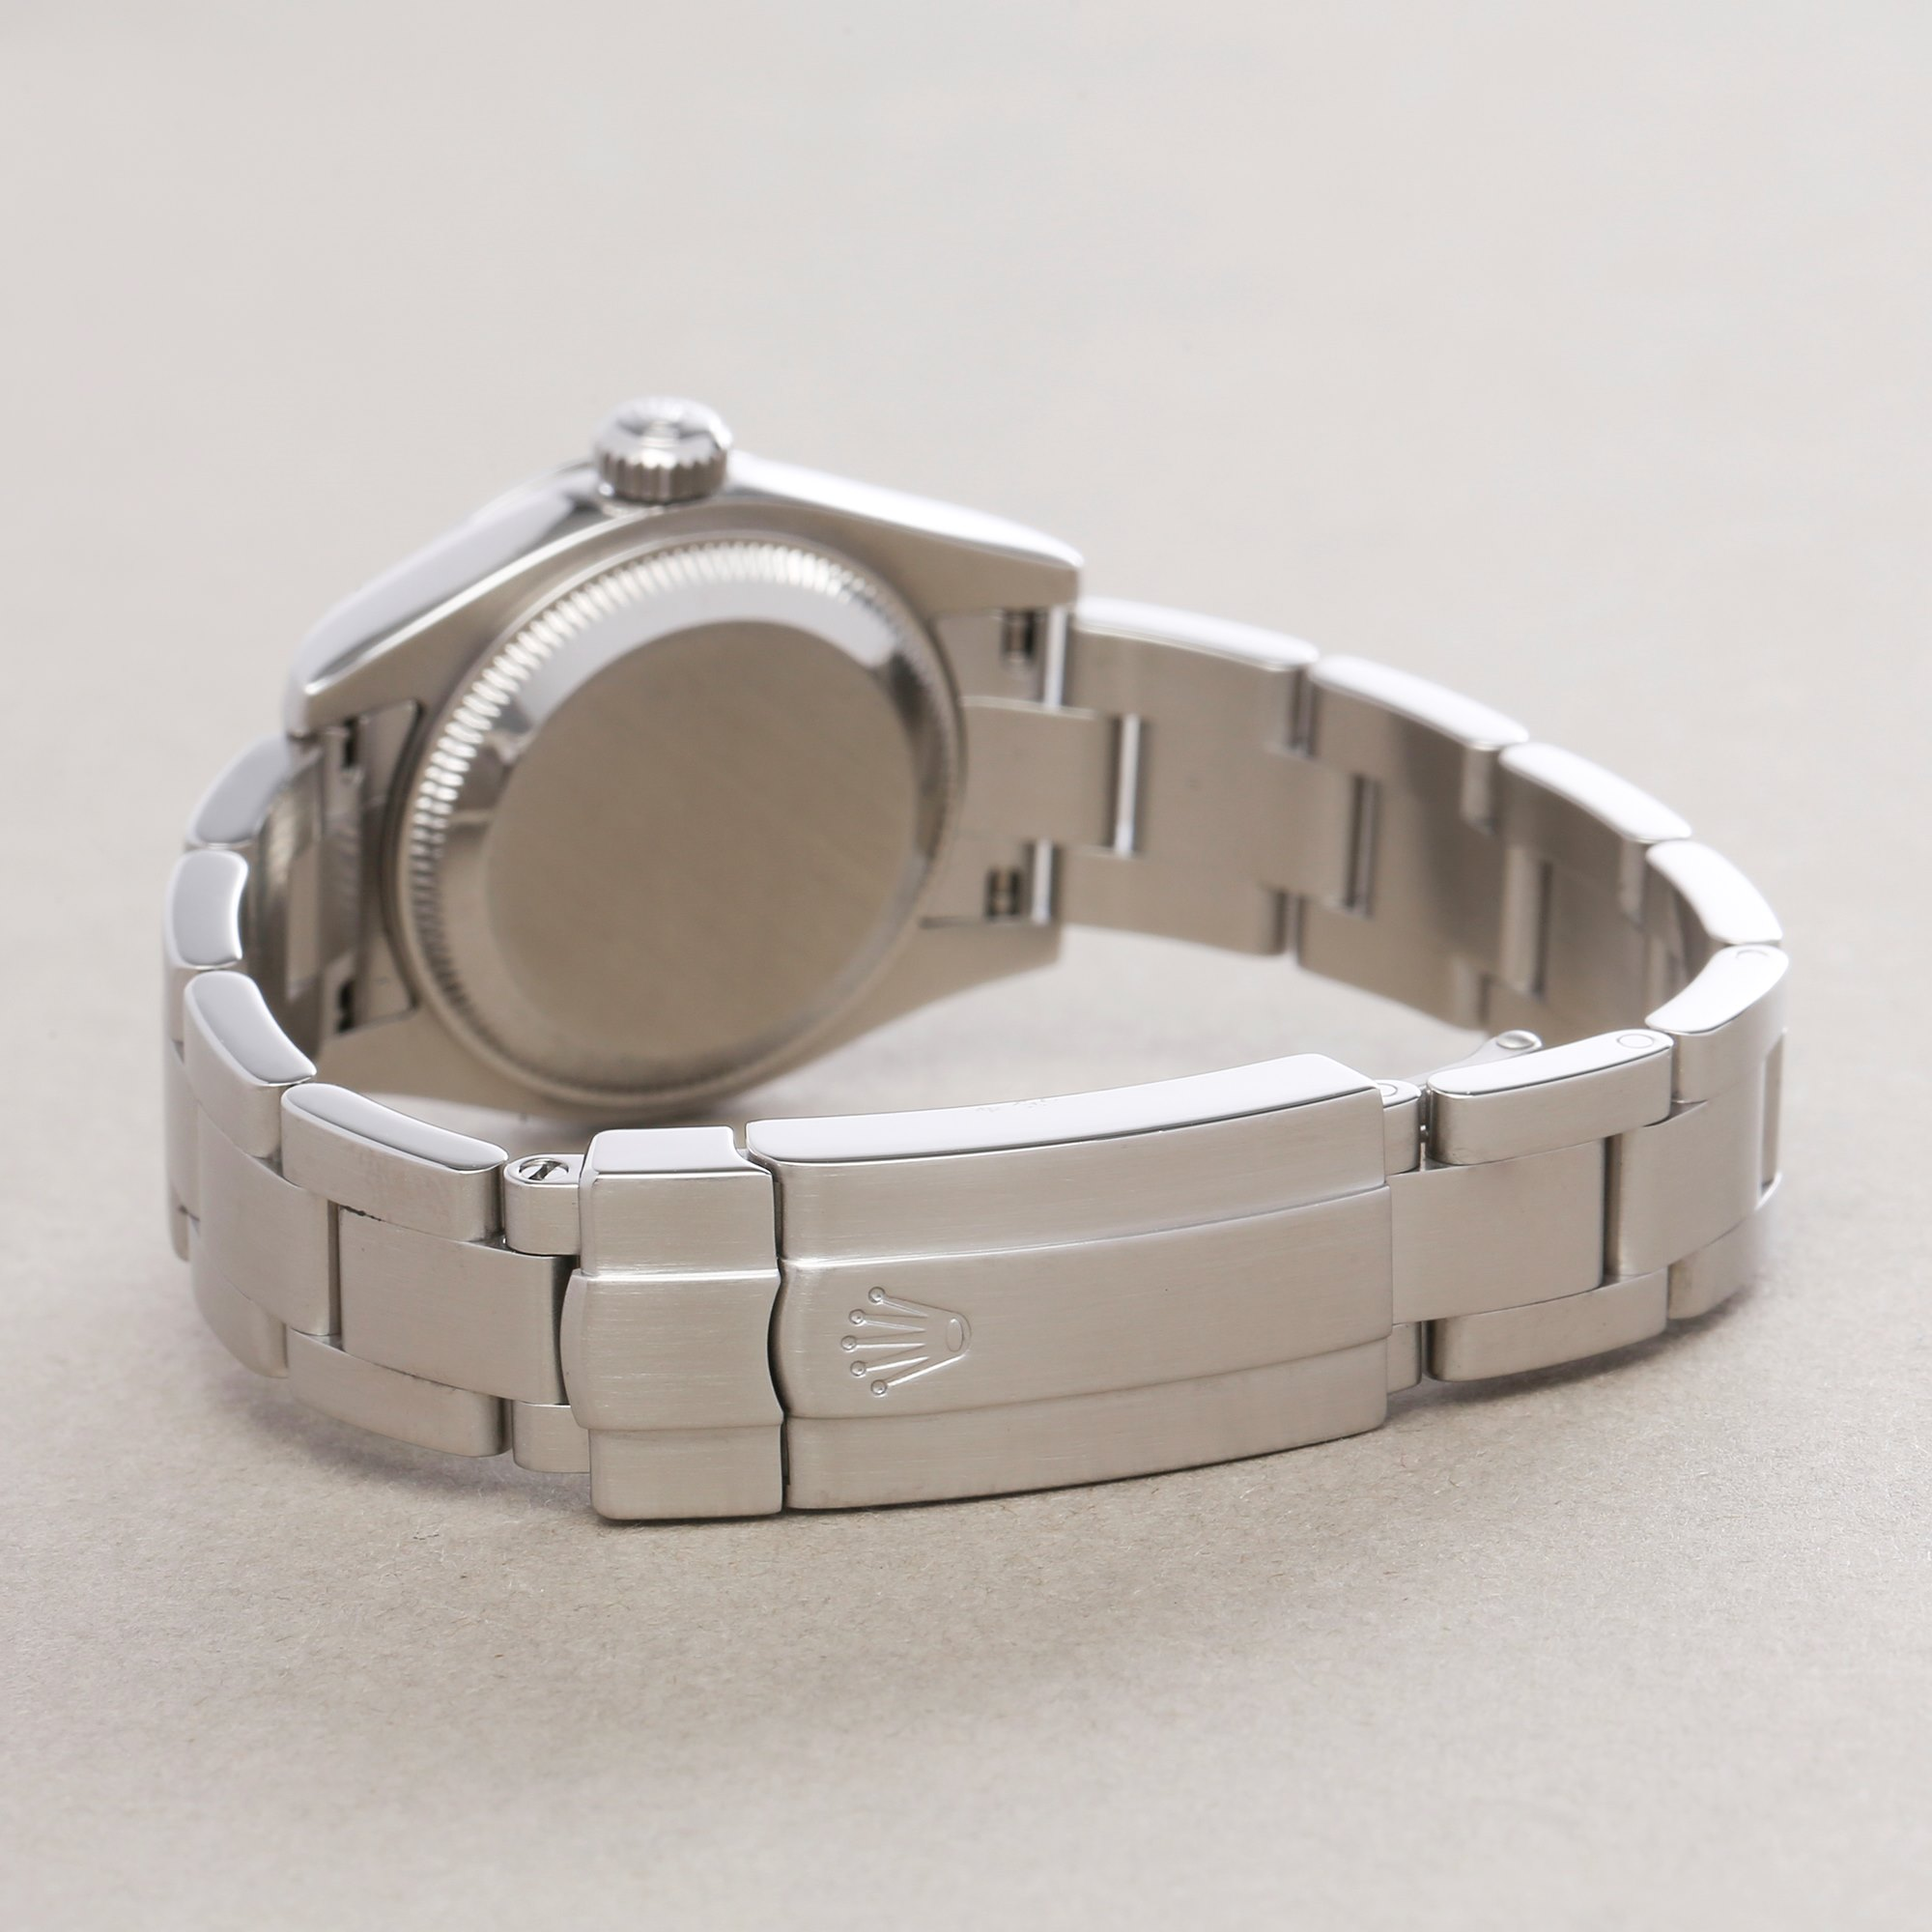 Rolex Oyster Perpetual 26 Roestvrij Staal 176200